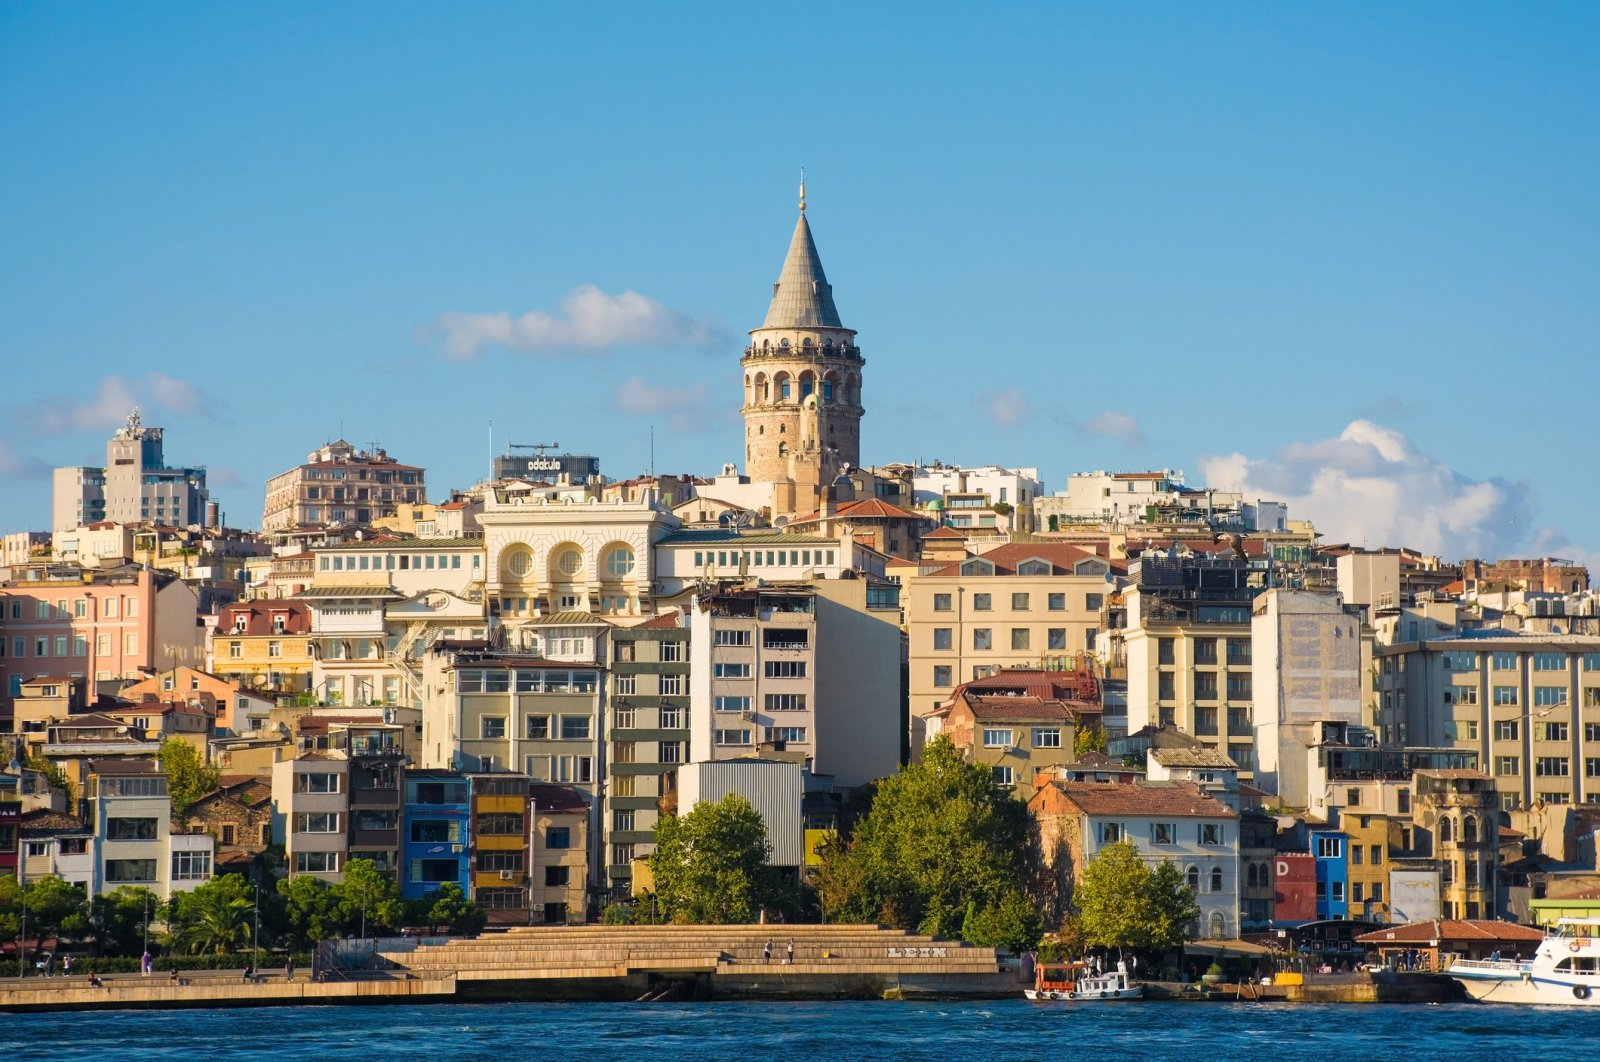 If you rent in Istanbul's Beyoğlu neighborhood, you'll wake up to the sounds of seagulls and local fishermen, with possible views of the Galata Tower. (iStock Photo)